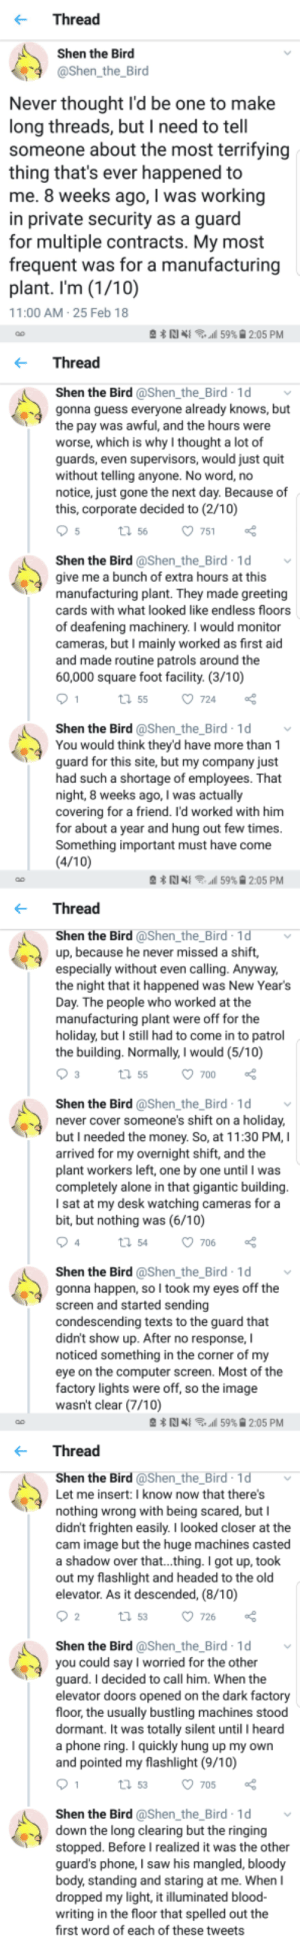 Being Alone, Dank, and Memes: Thread  Shen the Bird  @Shen the_Bird  Never thought l'd be one to make  long threads, but I need to tell  someone about the most terrifying  thing that's ever happened to  me. 8 weeks ago, I was working  in private security as a guard  for multiple contracts. My most  frequent was for a manufacturing  plant. I'm (1/10)  11:00 AM 25 Feb 18  N 59% 2:05 PM  Thread  Shen the Bird @Shen_the_Bird 1d  gonna guess everyone already knows, but  the pay was awful, and the hours were  worse, which is why I thought a lot of  guards, even supervisors, would just quit  without telling anyone. No word, no  notice, just gone the next day. Because of  this, corporate decided to (2/10)  5  t 56  751  Shen the Bird @Shen_the_Bird 1d  give me a bunch of extra hours at this  manufacturing plant. They made greeting  cards with what looked like endless floors  of deafening machinery. I would monitor  cameras, but I mainly worked as first aid  and made routine patrols around the  60,000 square foot facility. (3/10)  1  724  t 55  Shen the Bird @Shen_the_Bird 1d  You would think they'd have more than 1  guard for this site, but my company just  had such a shortage of employees. That  night, 8 weeks ago, I was actually  covering for a friend. I'd worked with him  for about a year and hung out few times.  Something important must have come  (4/10)  59% 9 2:05 PM  Thread  Shen the Bird @Shen_the_Bird 1d  up, because he never missed a shift,  especially without even calling. Anyway,  the night that it happened was New Year's  Day. The people who worked at the  manufacturing plant were off for the  holiday, but I still had to come in to patrol  the building. Normally, I would (5/10)  3  t 55  700  Shen the Bird @Shen_the_Bird 1d  never cover someone's shift on a holiday,  but I needed the money. So, at 11:30 PM, I  arrived for my overnight shift, and the  plant workers left, one by one until I was  completely alone in that gigantic building.  I sat at my desk watching cameras for a  bit, but nothing was (6/10)  4  706  t54  Shen the Bird @Shen_the_Bird 1d  gonna happen, so I took my eyes off the  screen and started sending  condescending texts to the guard that  didn't show up. After no response,  noticed something in the corner of my  eye on the computer screen. Most of the  factory lights were off, so the image  wasn't clear (7/10)  59% 2:05 PM  Thread  Shen the Bird @Shen_the_Bird-1d  Let me insert: I know now that there's  nothing wrong with being scared, but I  didn't frighten easily. I looked closer at the  cam image but the huge machines casted  a shadow over that...thing. I got up, took  out my flashlight and headed to the old  elevator. As it descended, (8/10)  2  726  t 53  Shen the Bird @Shen_the_Bird 1d  you could say l worried for the other  guard. I decided to call him. When the  elevator doors opened on the dark factory  floor, the usually bustling machines stood  dormant. It was totally silent until I heard  a phone ring. I quickly hung up my own  and pointed my flashlight (9/10)  1  t 53  705  Shen the Bird @Shen_the_Bird 1d  down the long clearing but the ringing  stopped. Before I realized it was the other  guard's phone, I saw his mangled, bloody  body, standing and staring at me. When  dropped my light, it illuminated blood-  writing in the floor that spelled out the  first word of each of these tweets This gave me the shivers. by -Tinsky- FOLLOW 4 MORE MEMES.